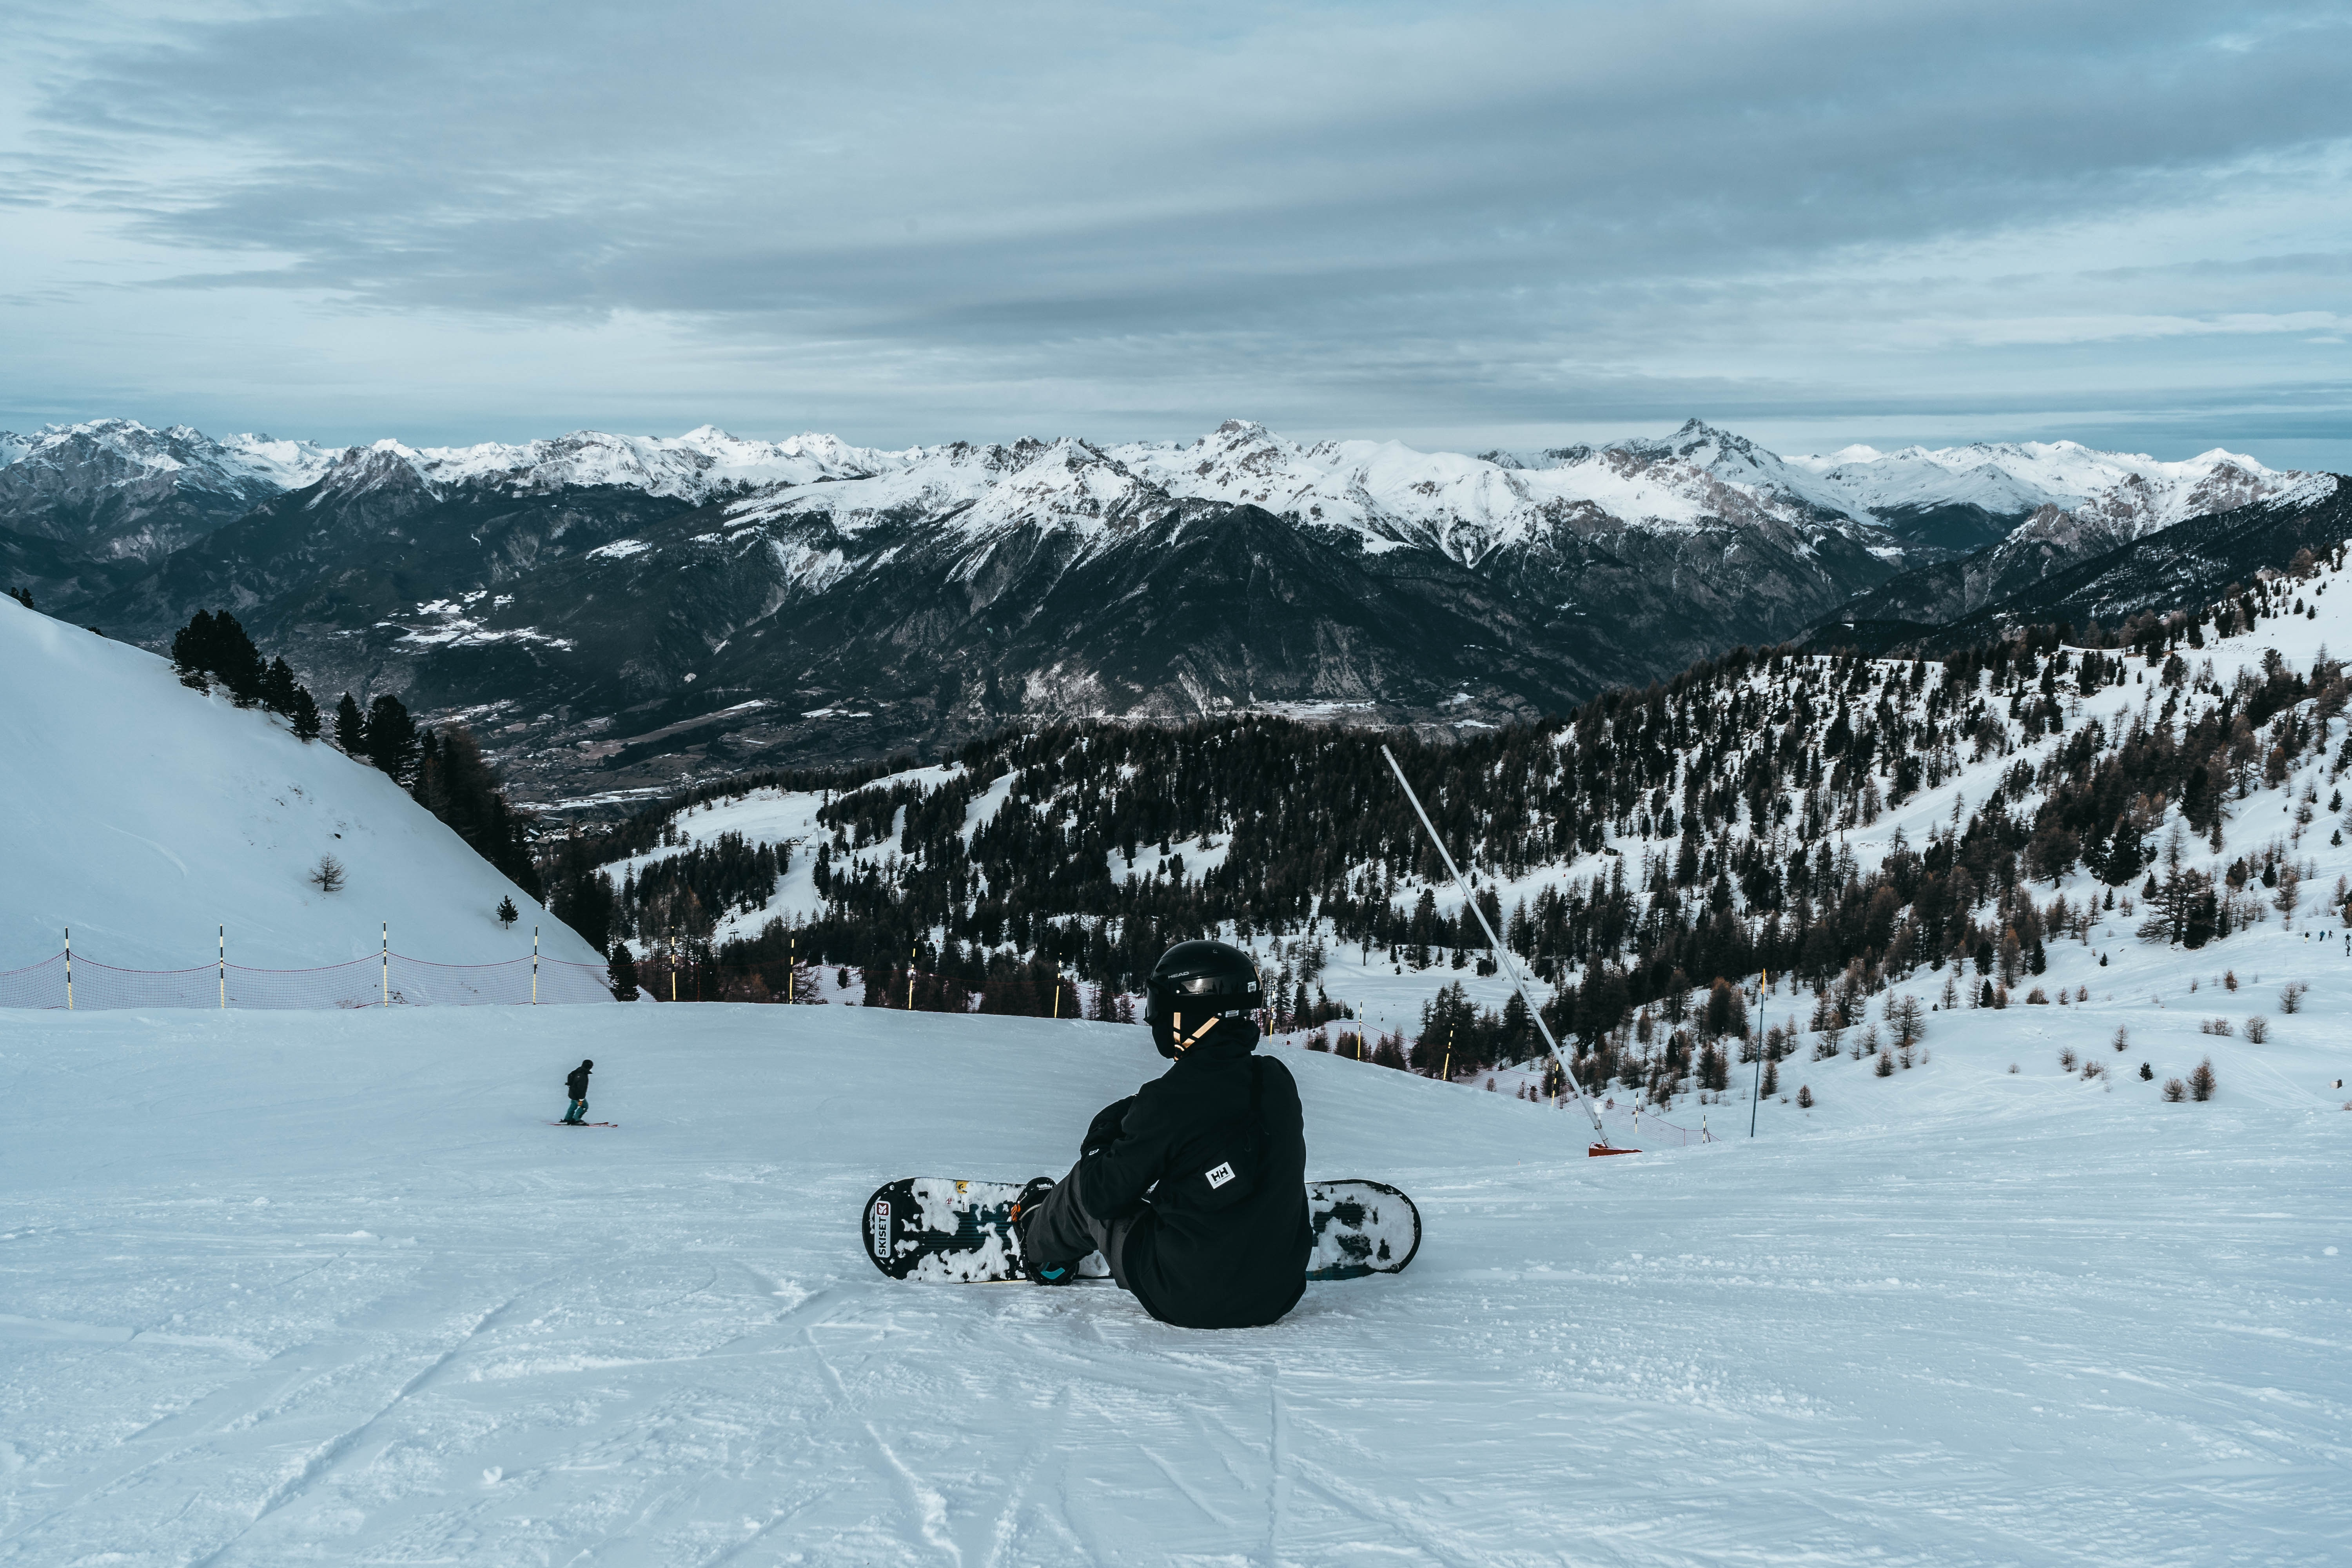 152617 download wallpaper Sports, Snowboarder, Snowboard, Snow, Winter, Mountains screensavers and pictures for free